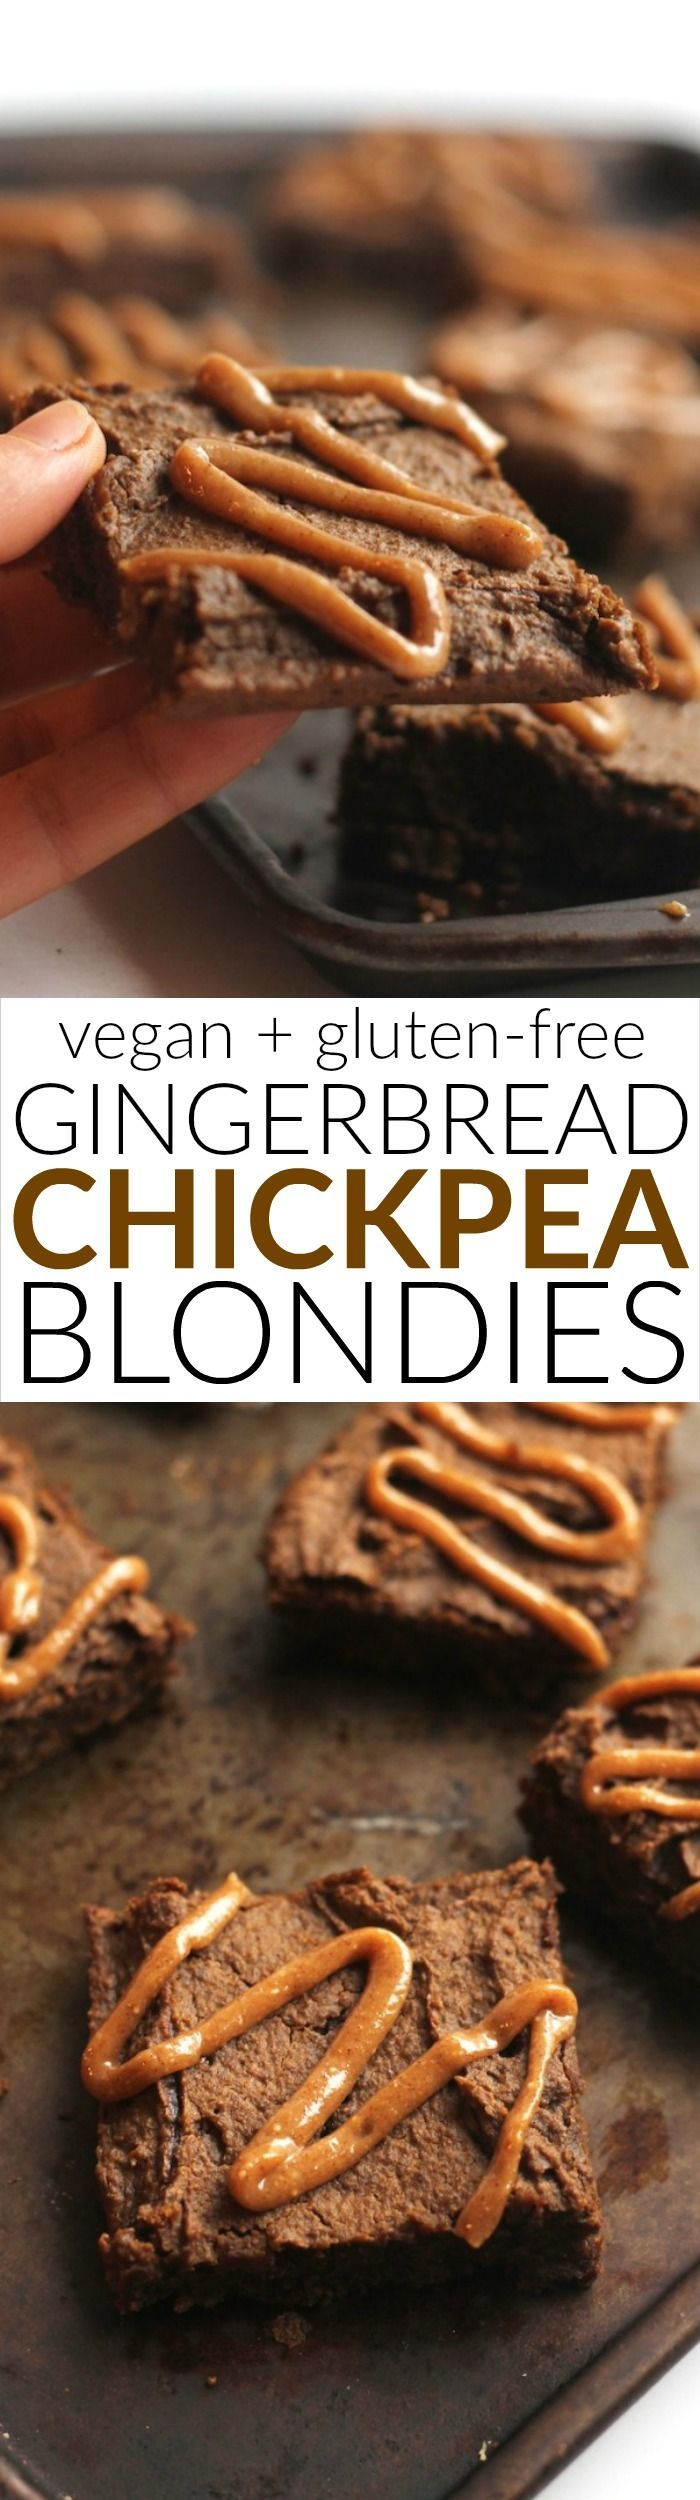 Flourless gingerbread blondies made with high-protein chickpeas! These vegan and gluten-free snack bars make the perfect healthy treat for kids and adults alike.